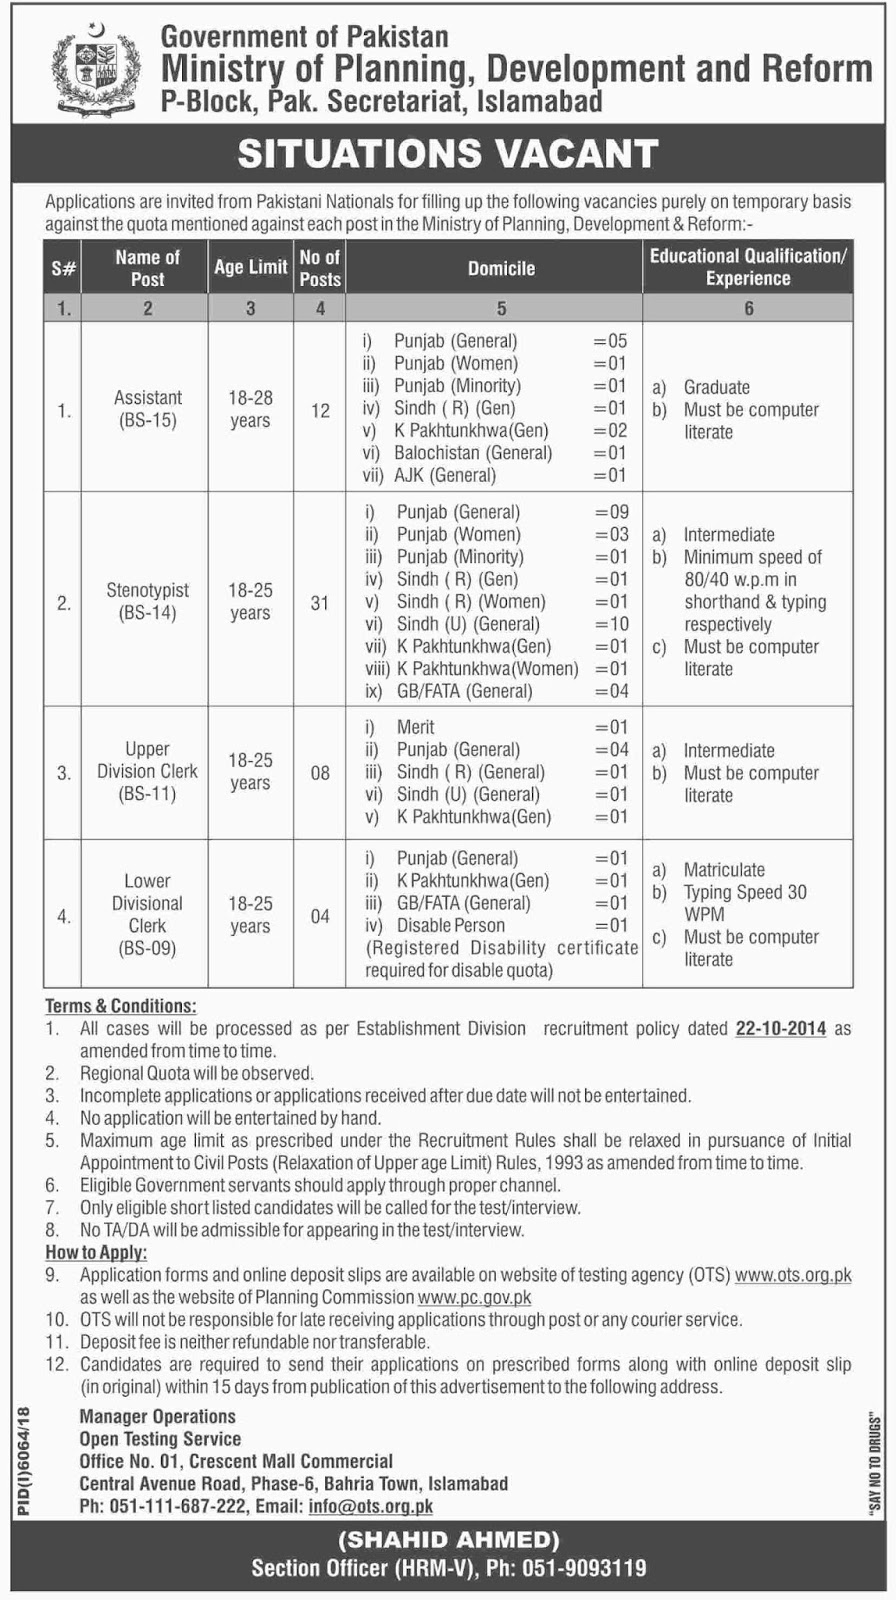 Advertisement for the Ministry of Planning and Development Jobs